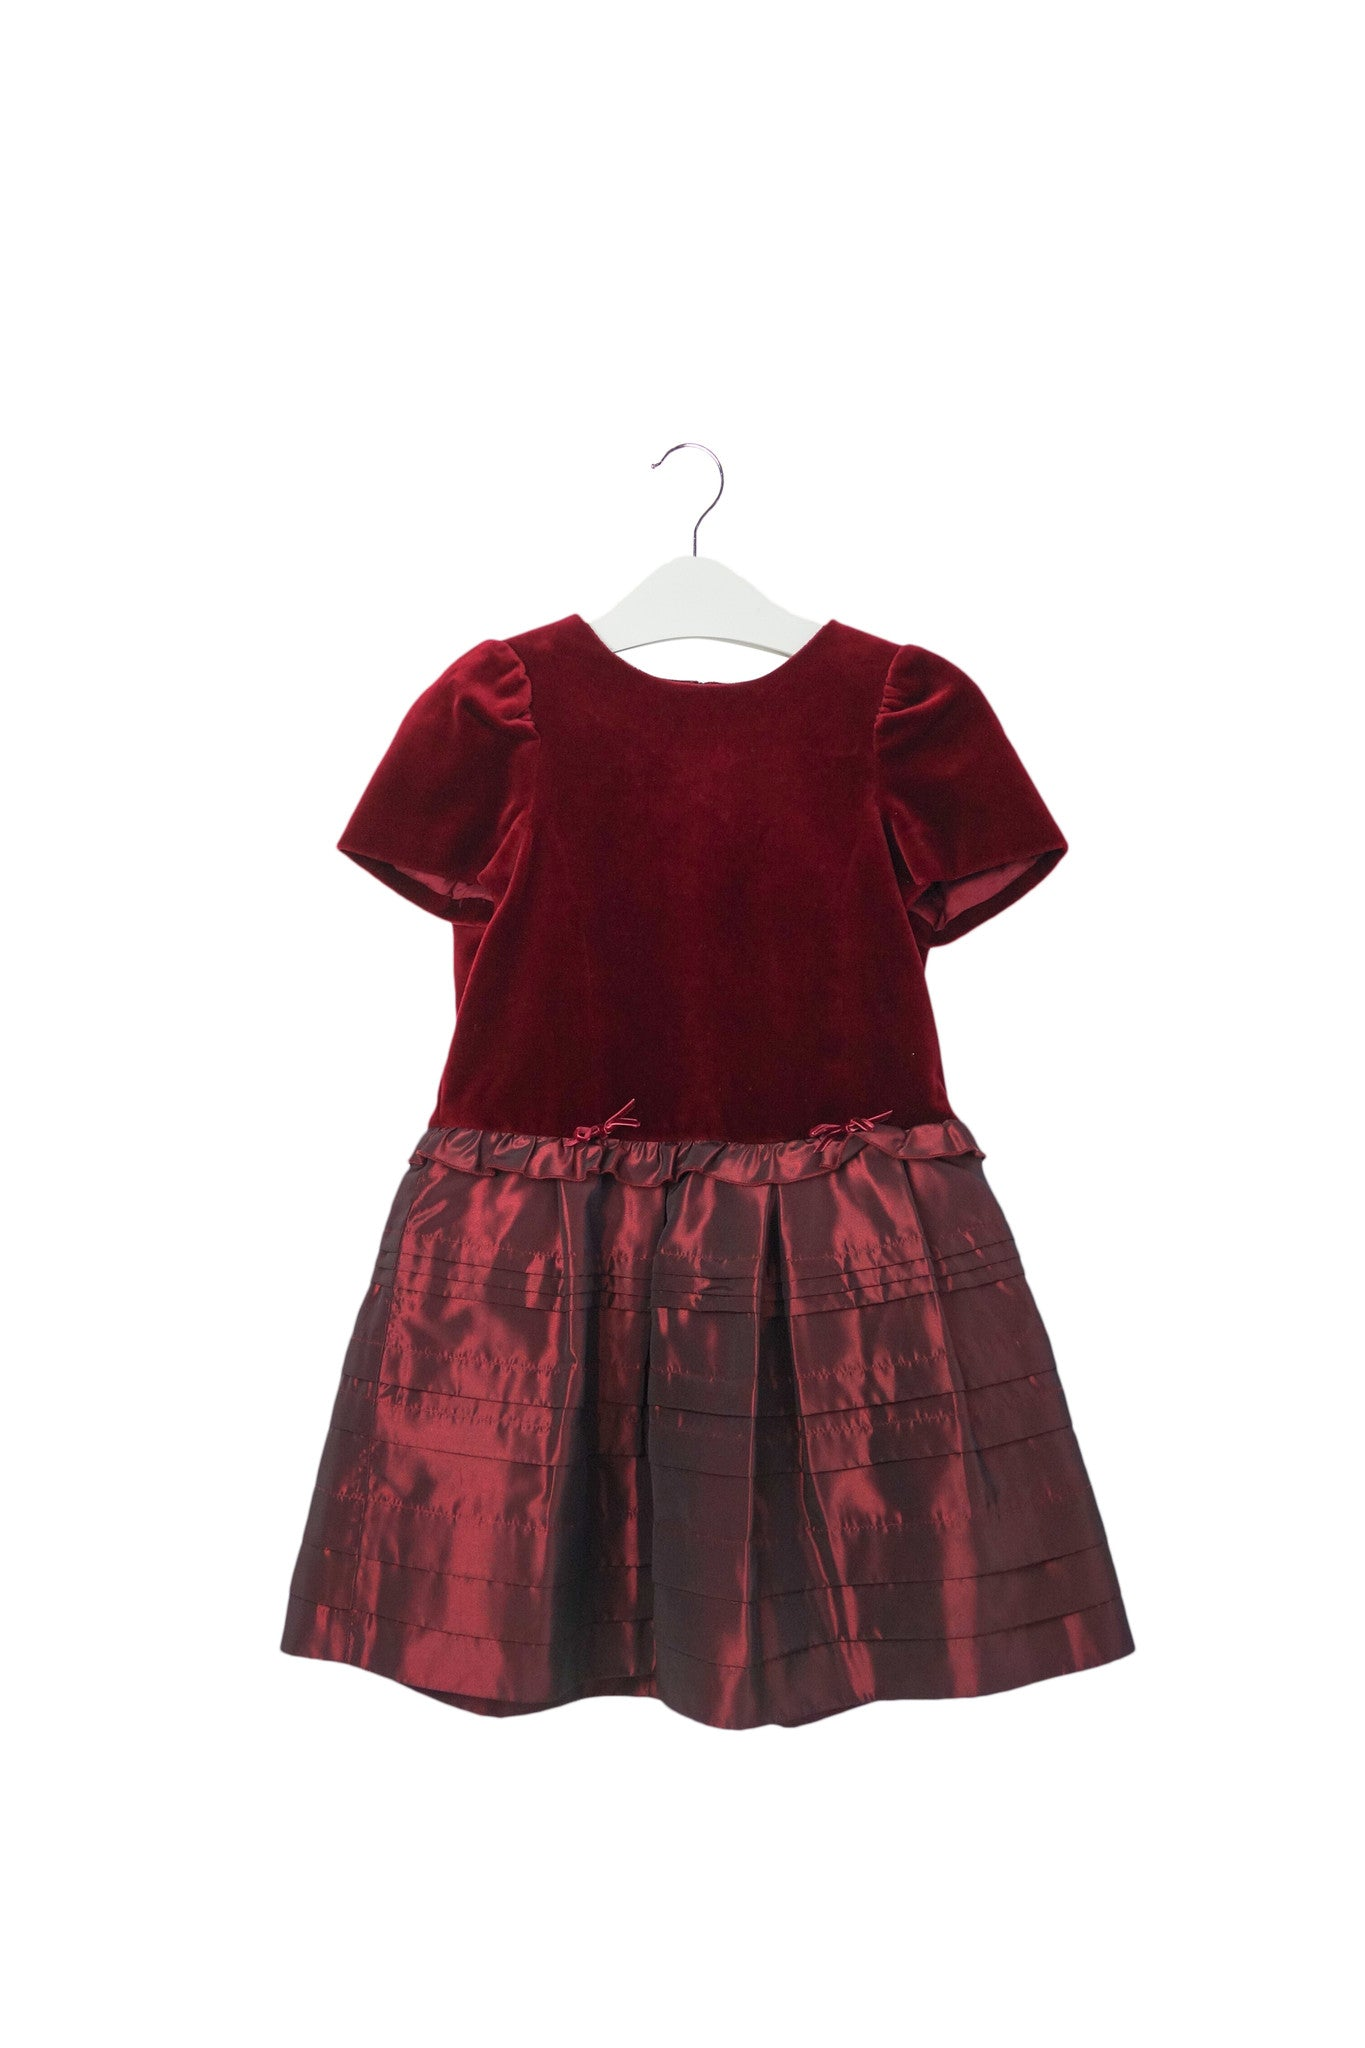 10003167 Nicholas & Bears Kids~Dress 4T at Retykle